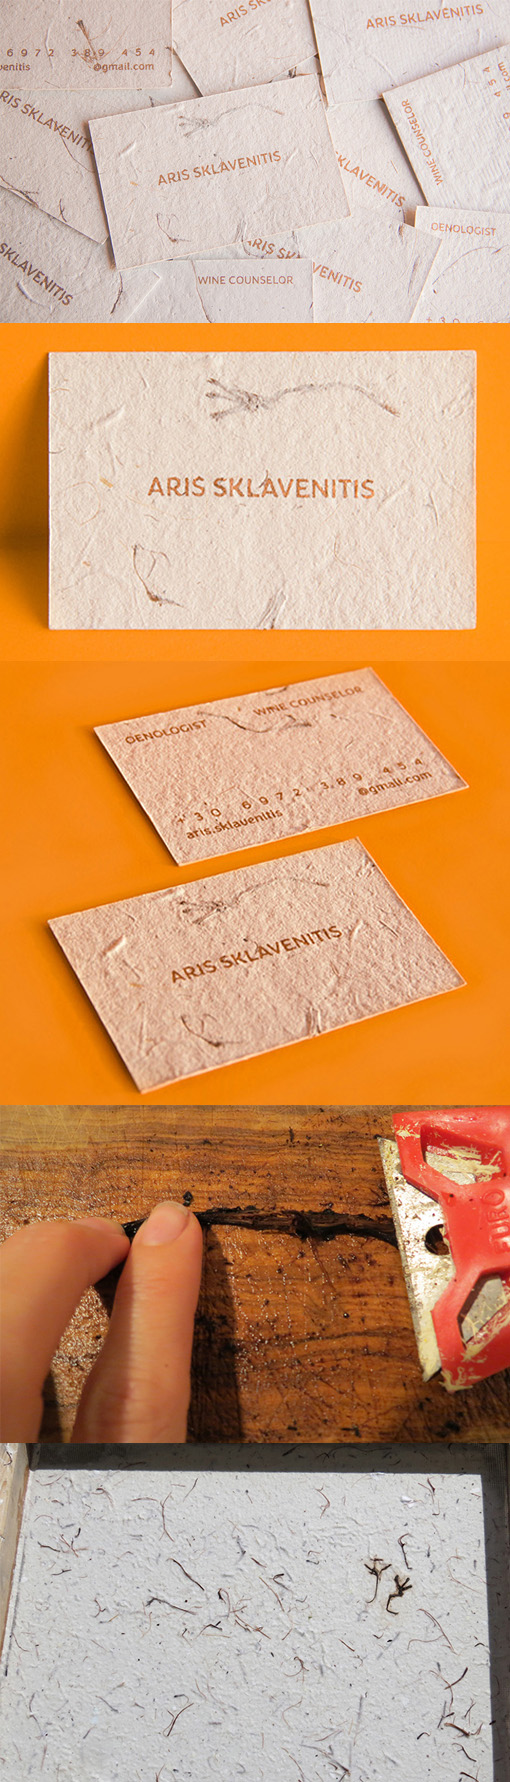 Business Cards For A Wine Expert Printed On Handmade Paper From Grape Stalks